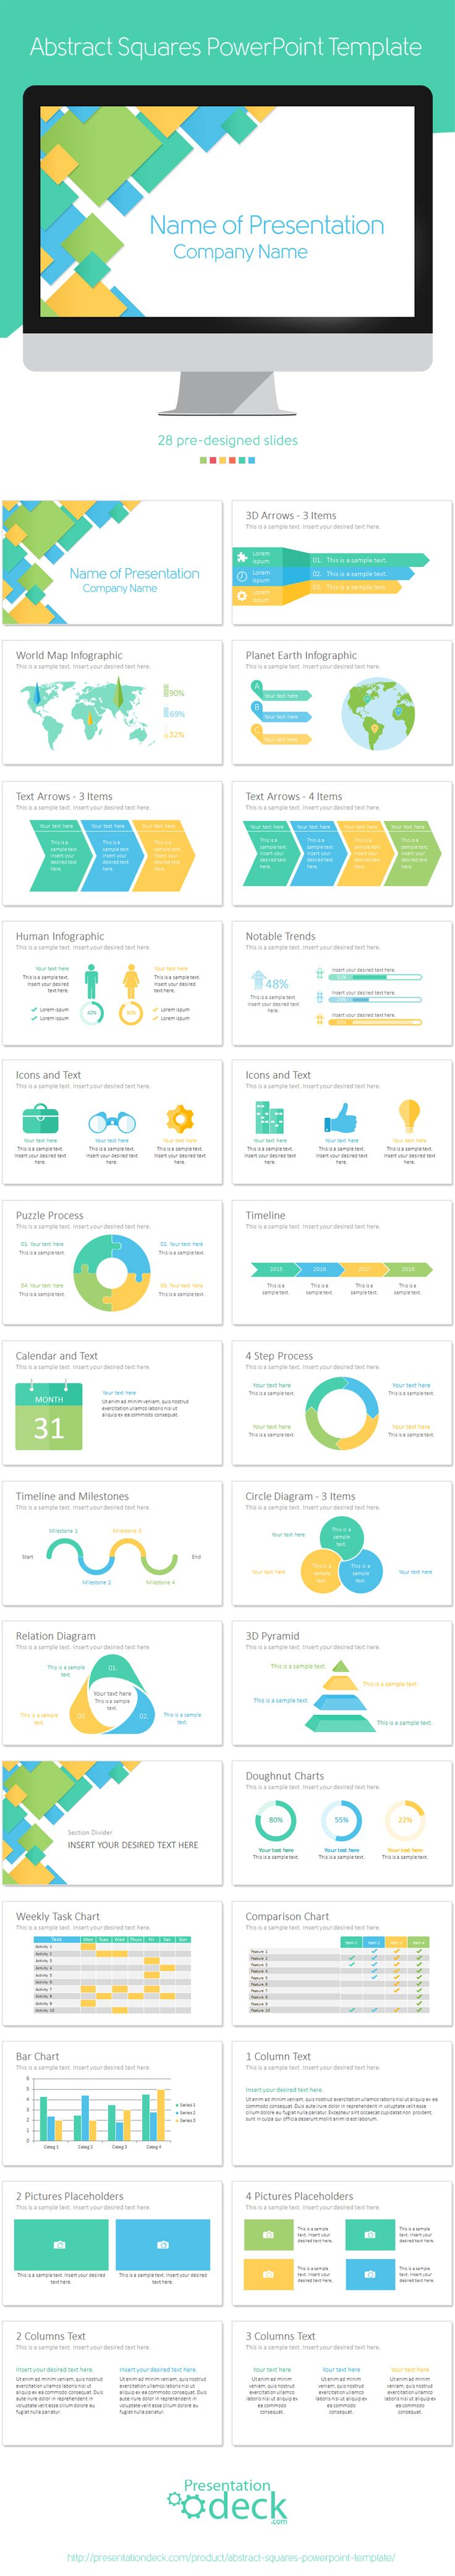 Abstract squares PowerPoint template with 28 pre-designed slides. #presentations #powerpoint